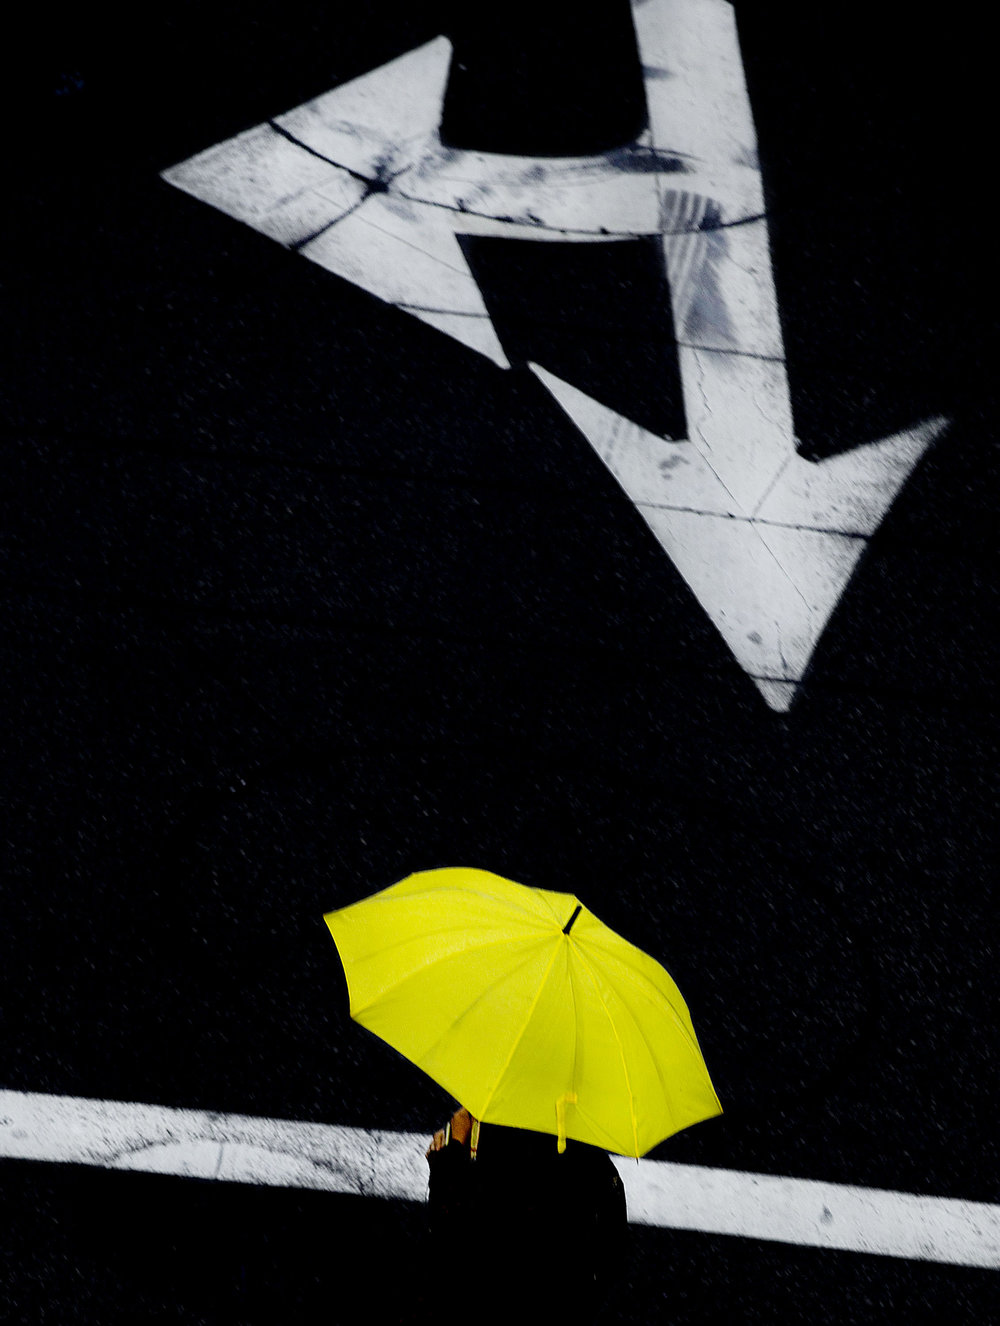 A woman uses an bright yellow umbrella to keep the rain off her as she crosses Orange Street during a winter rain shower in Riverside on Thursday, December 6, 2018.